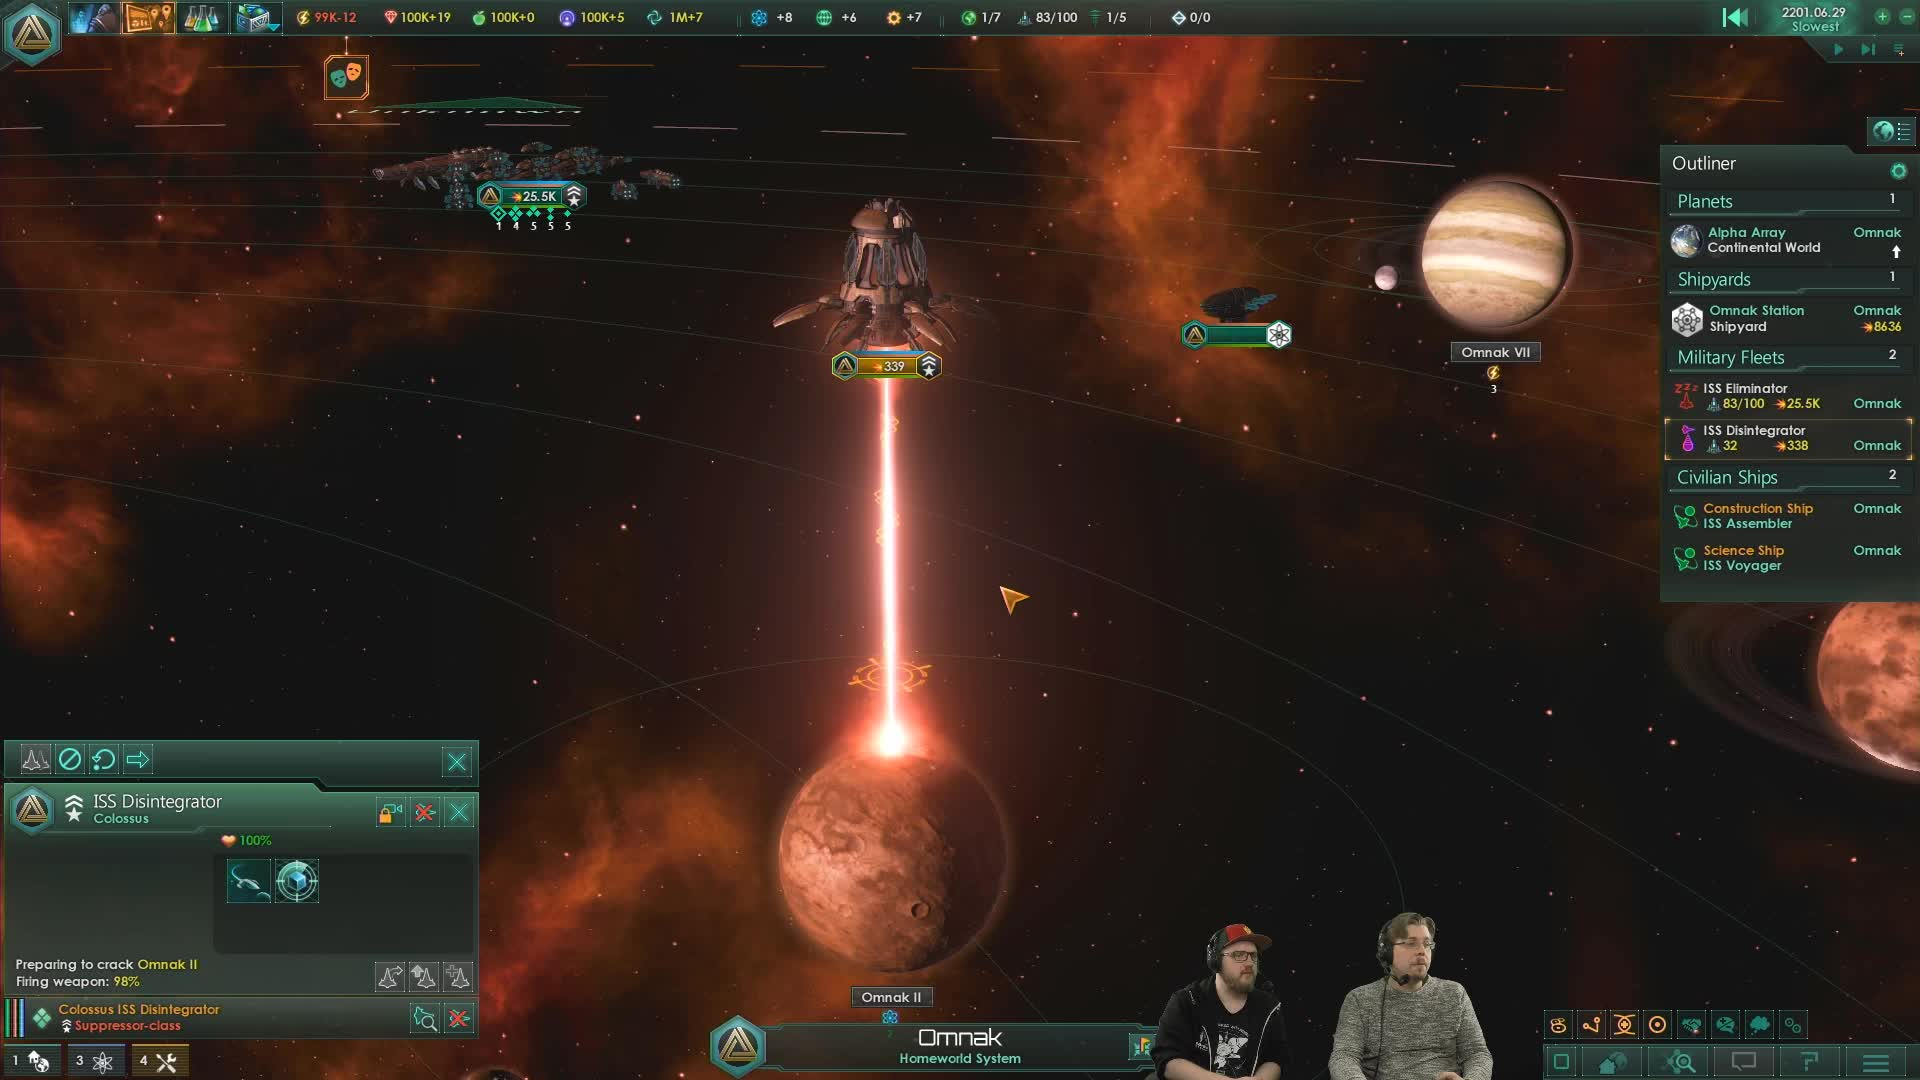 Grand Strategy, Paradox Interactive, Planet Destroyers, Planet Killers, Real time Strategy, Space strategy, Stellaris, Stellaris Update, Stellaris expansion, Warfare Defined, Stellaris: Apocalypse - First Look GIFs